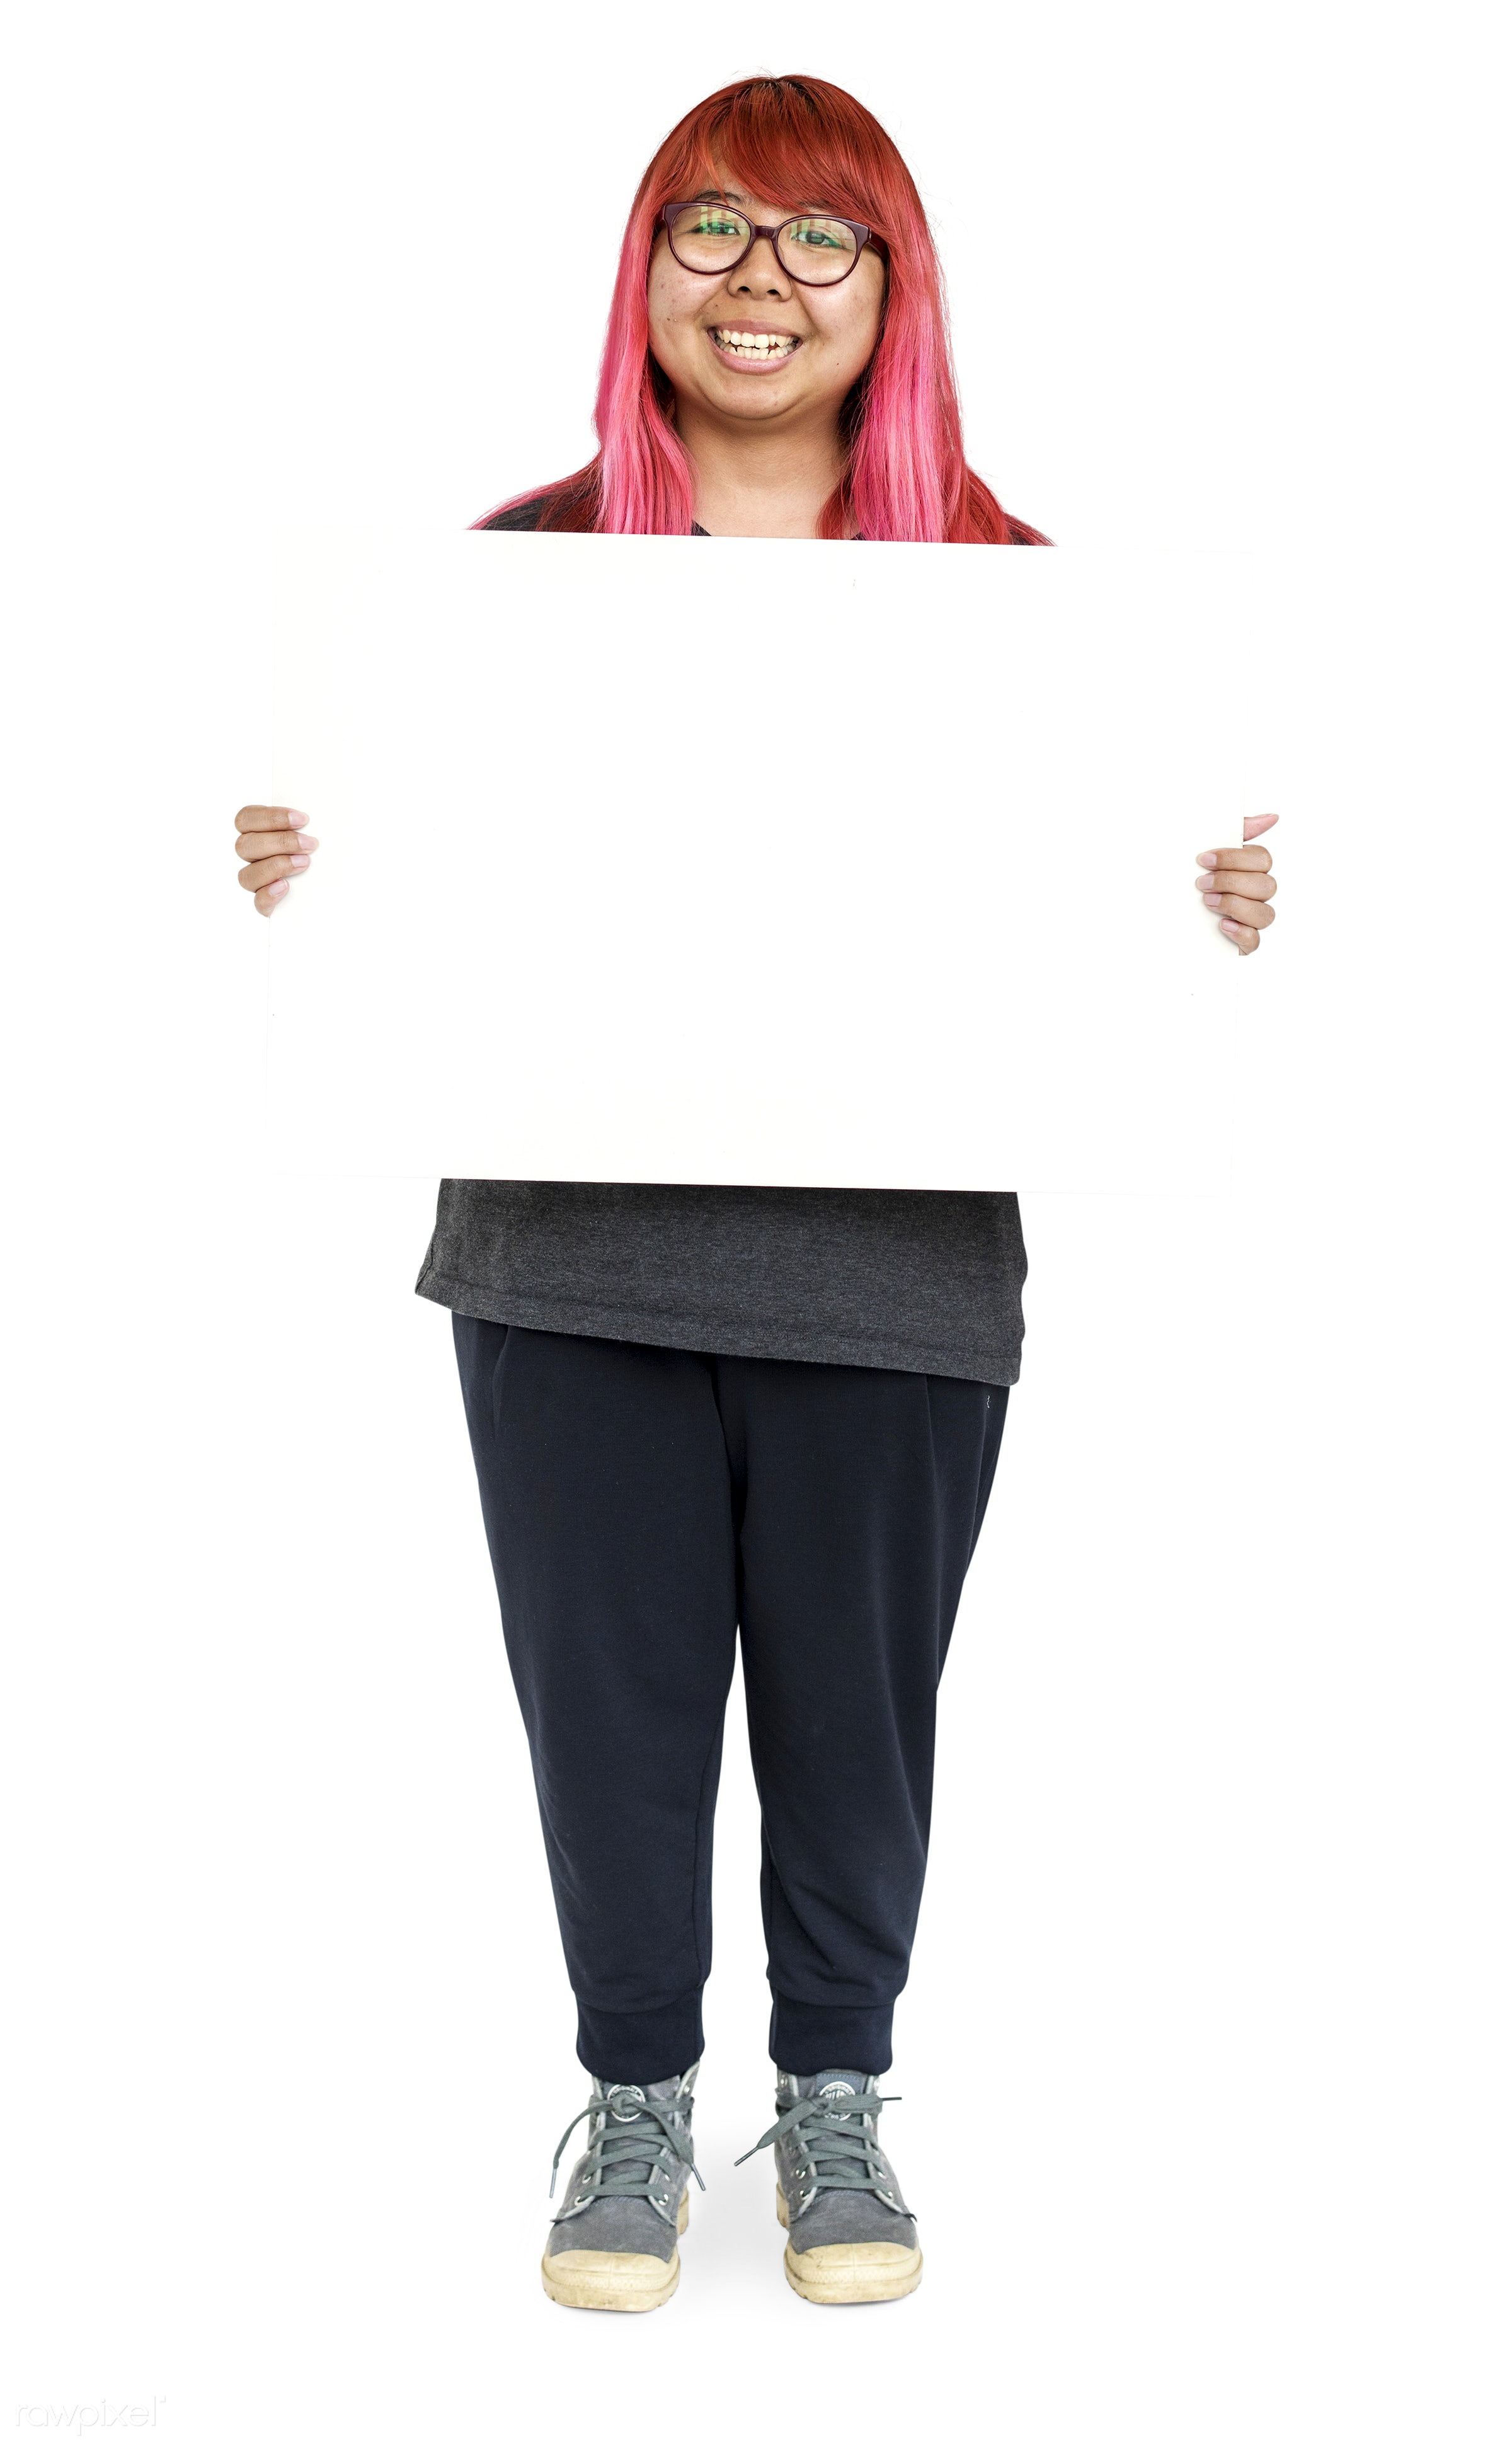 blank, advertising, background, casual, cheerful, communication, copy space, empty, female, full body, full length,...